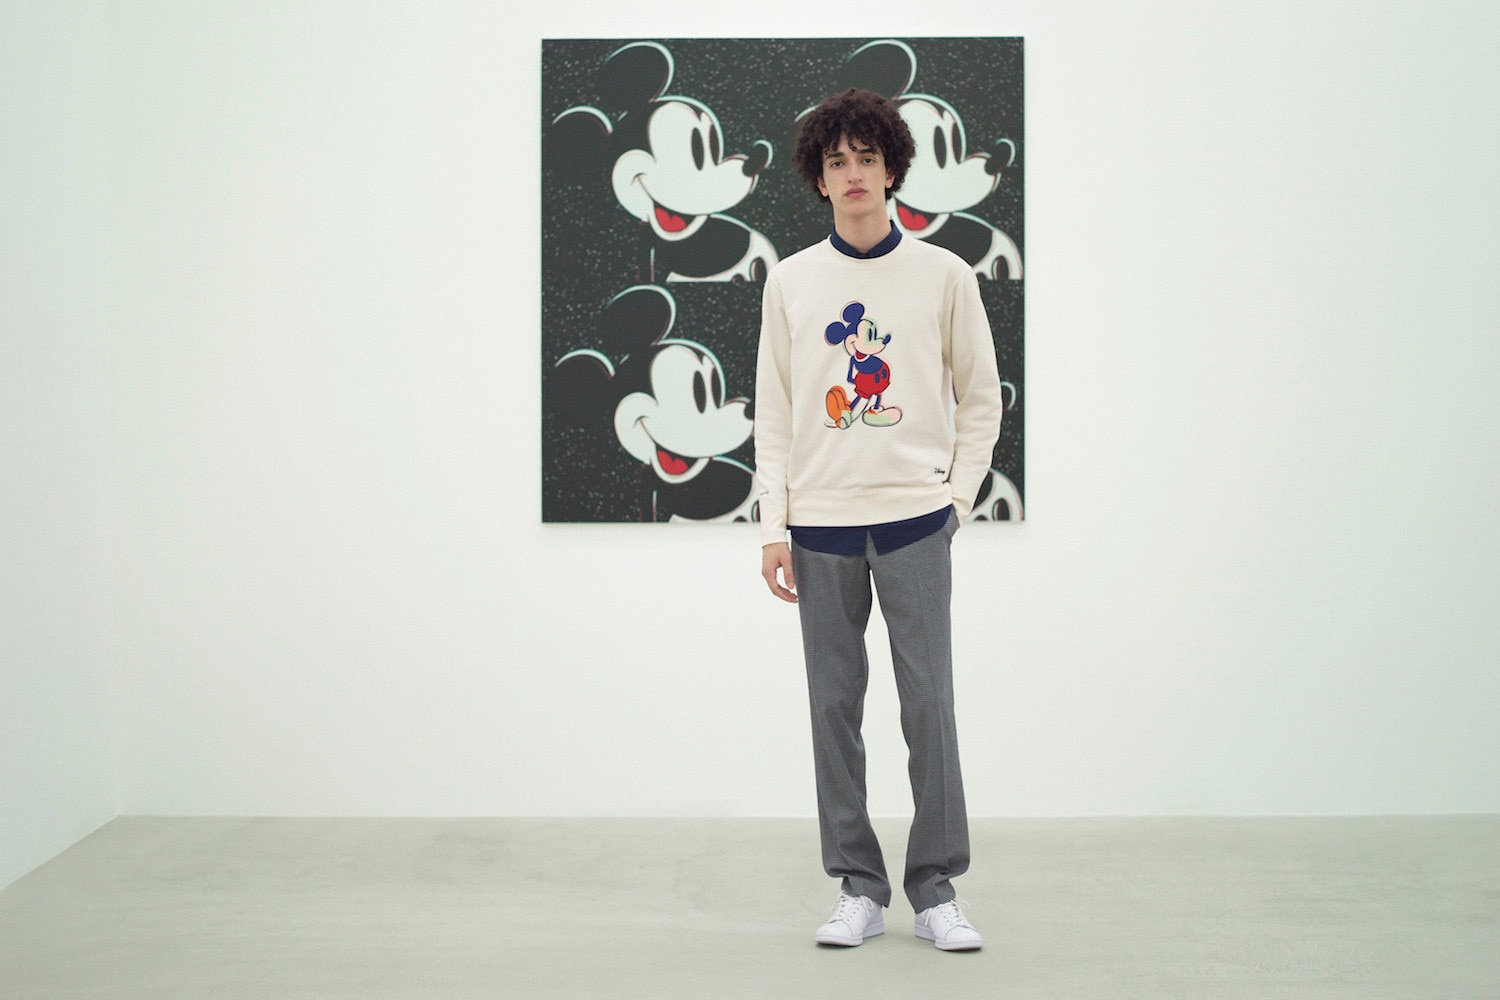 Model wearing a sweatshirt with Andy Warhol's pop art piece